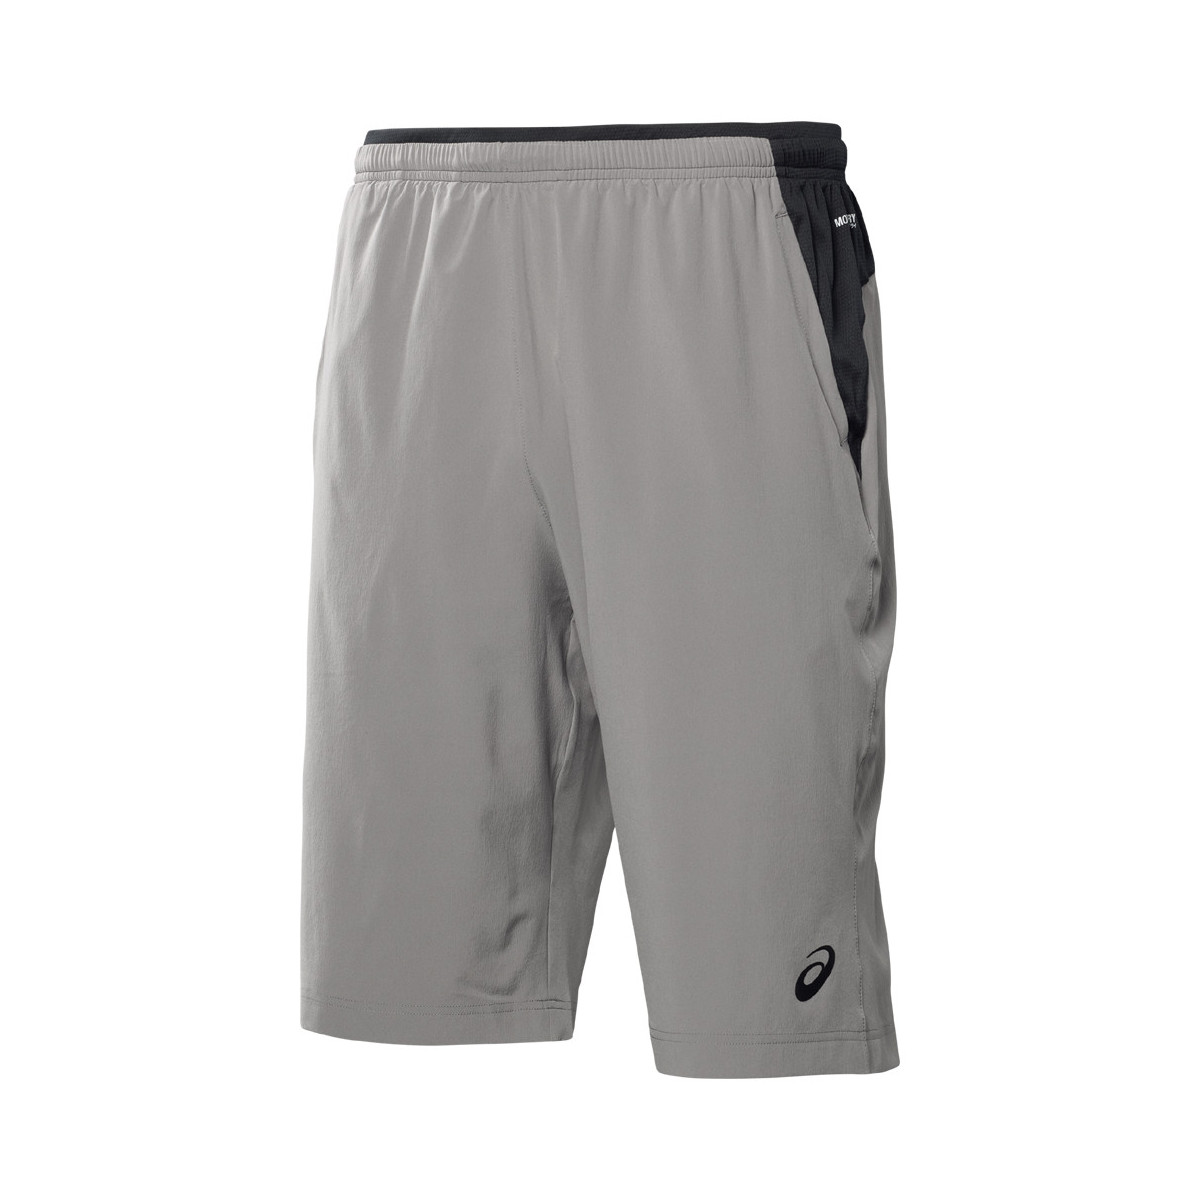 Asics Performance Long Woven Short grau